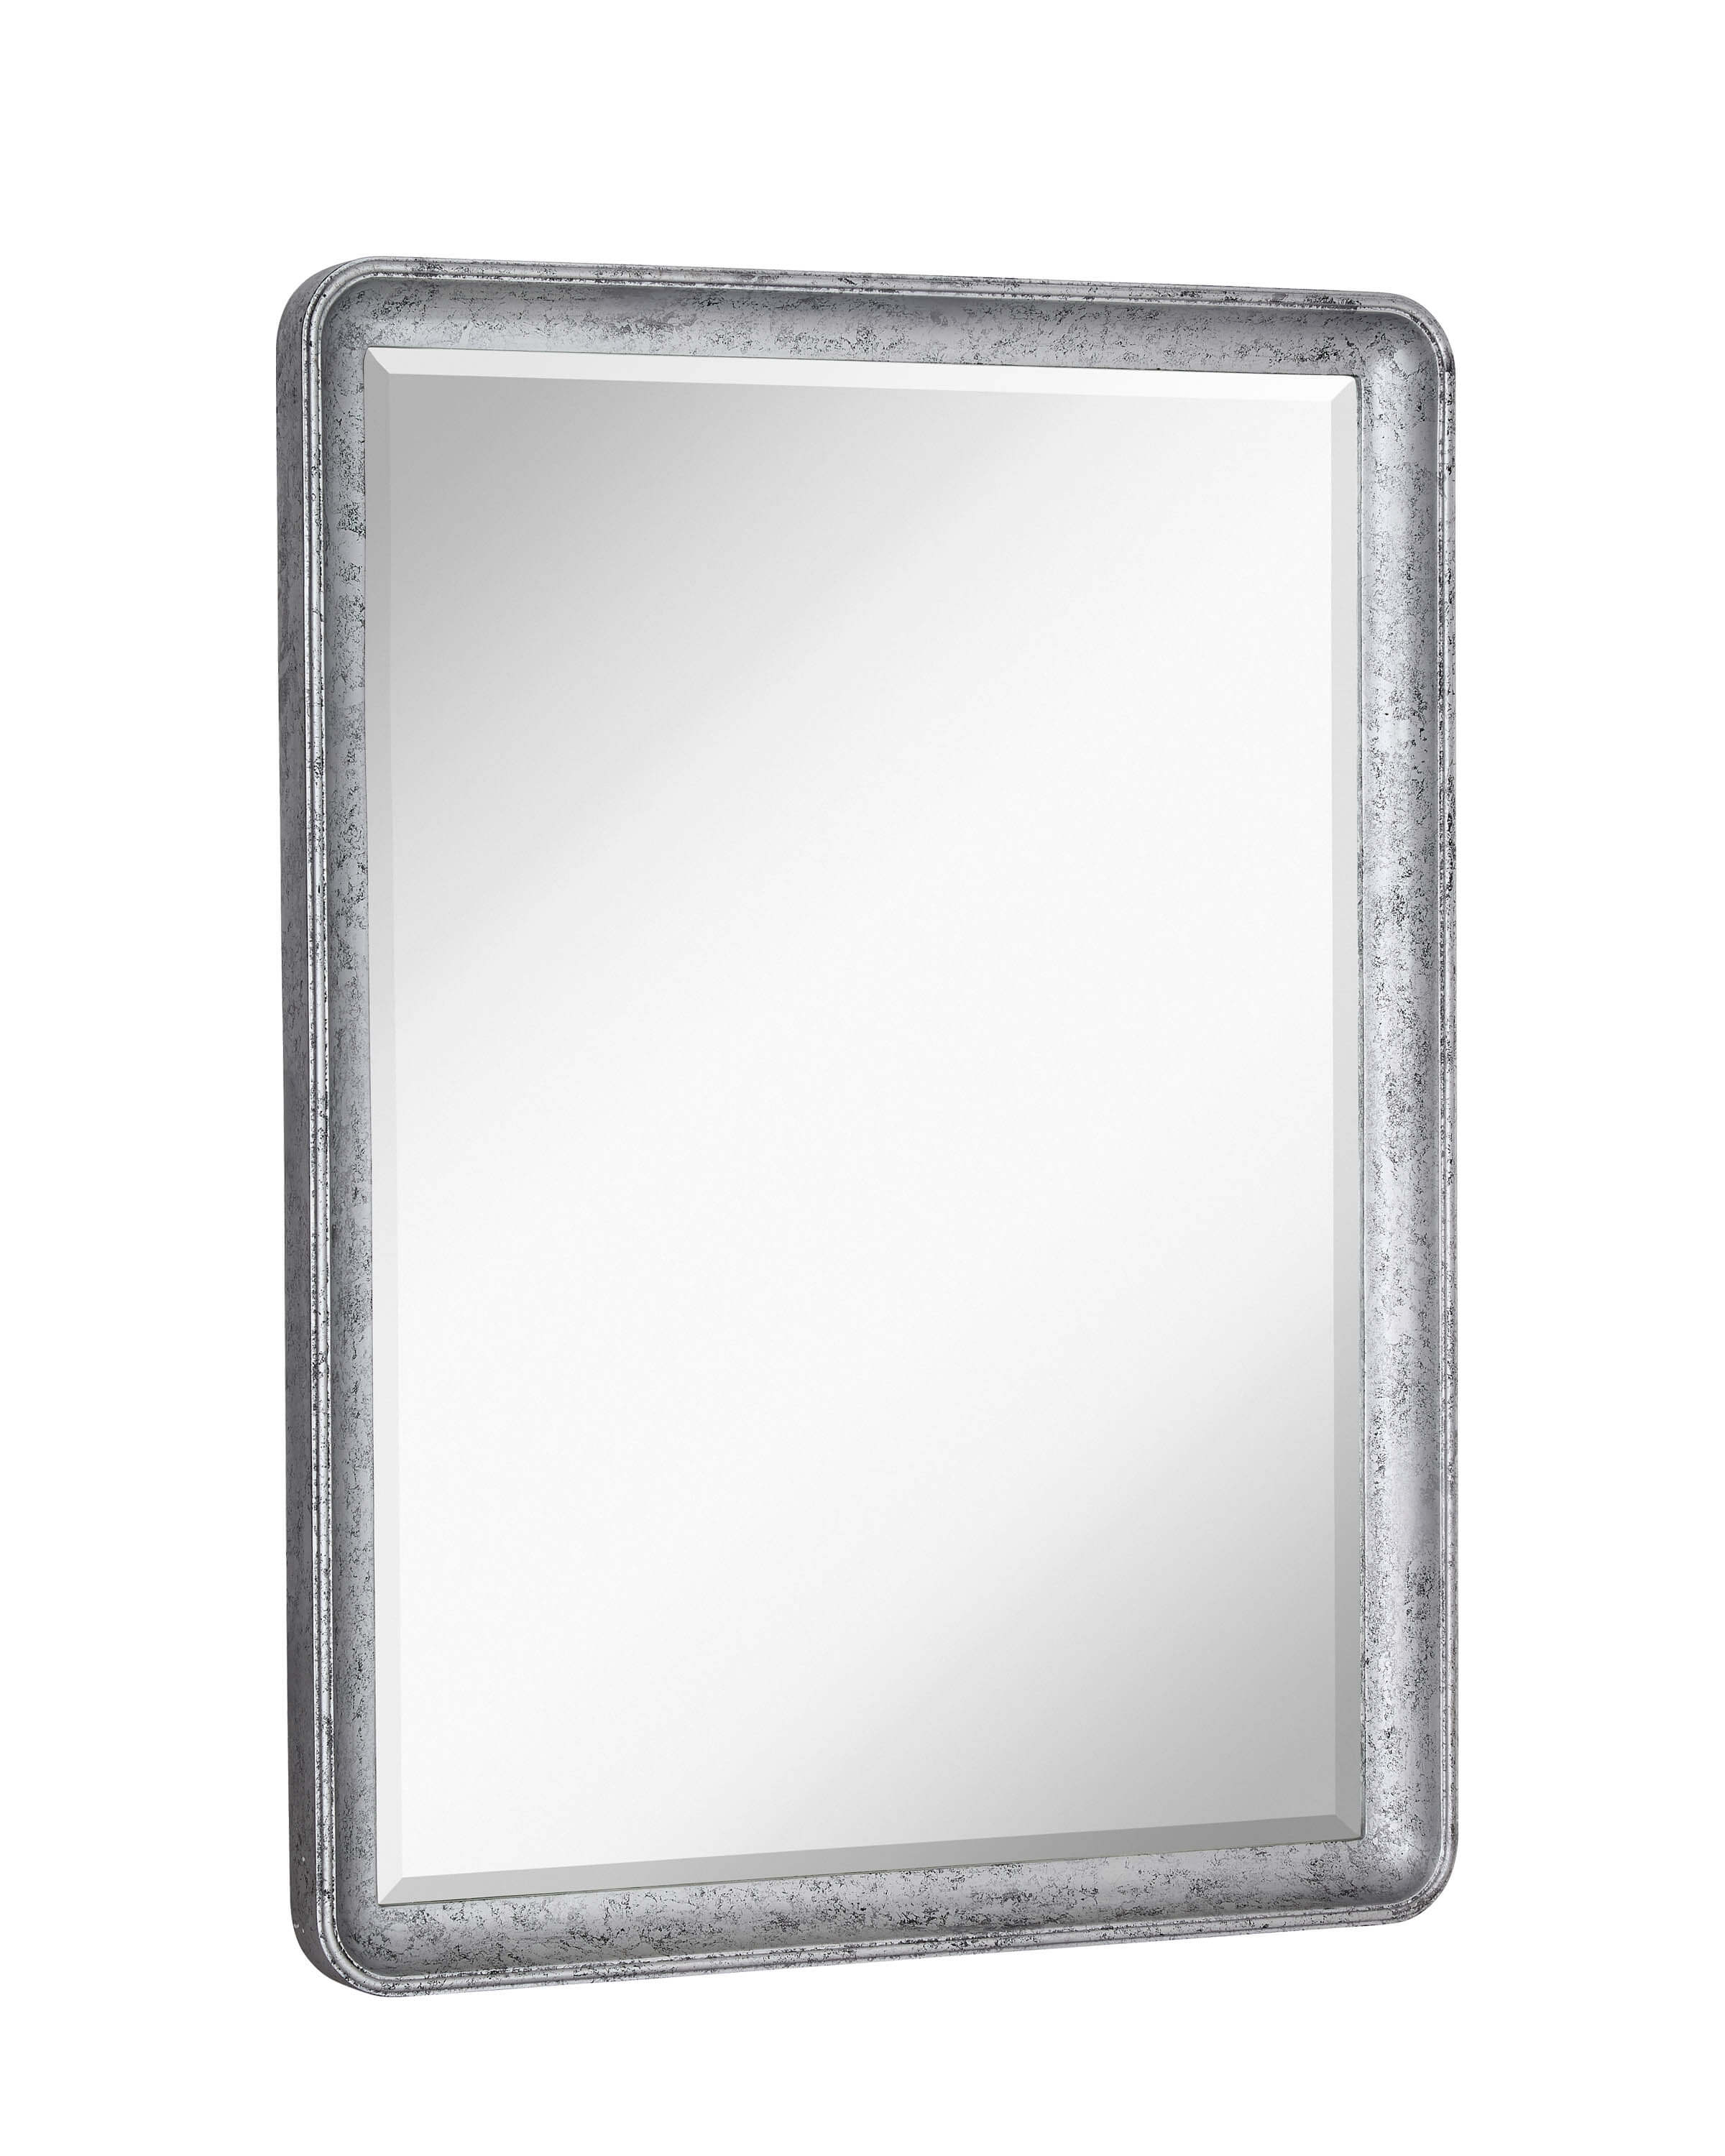 3218 B – Majestic Mirror & Frame Regarding Silver Frame Accent Mirrors (View 14 of 20)